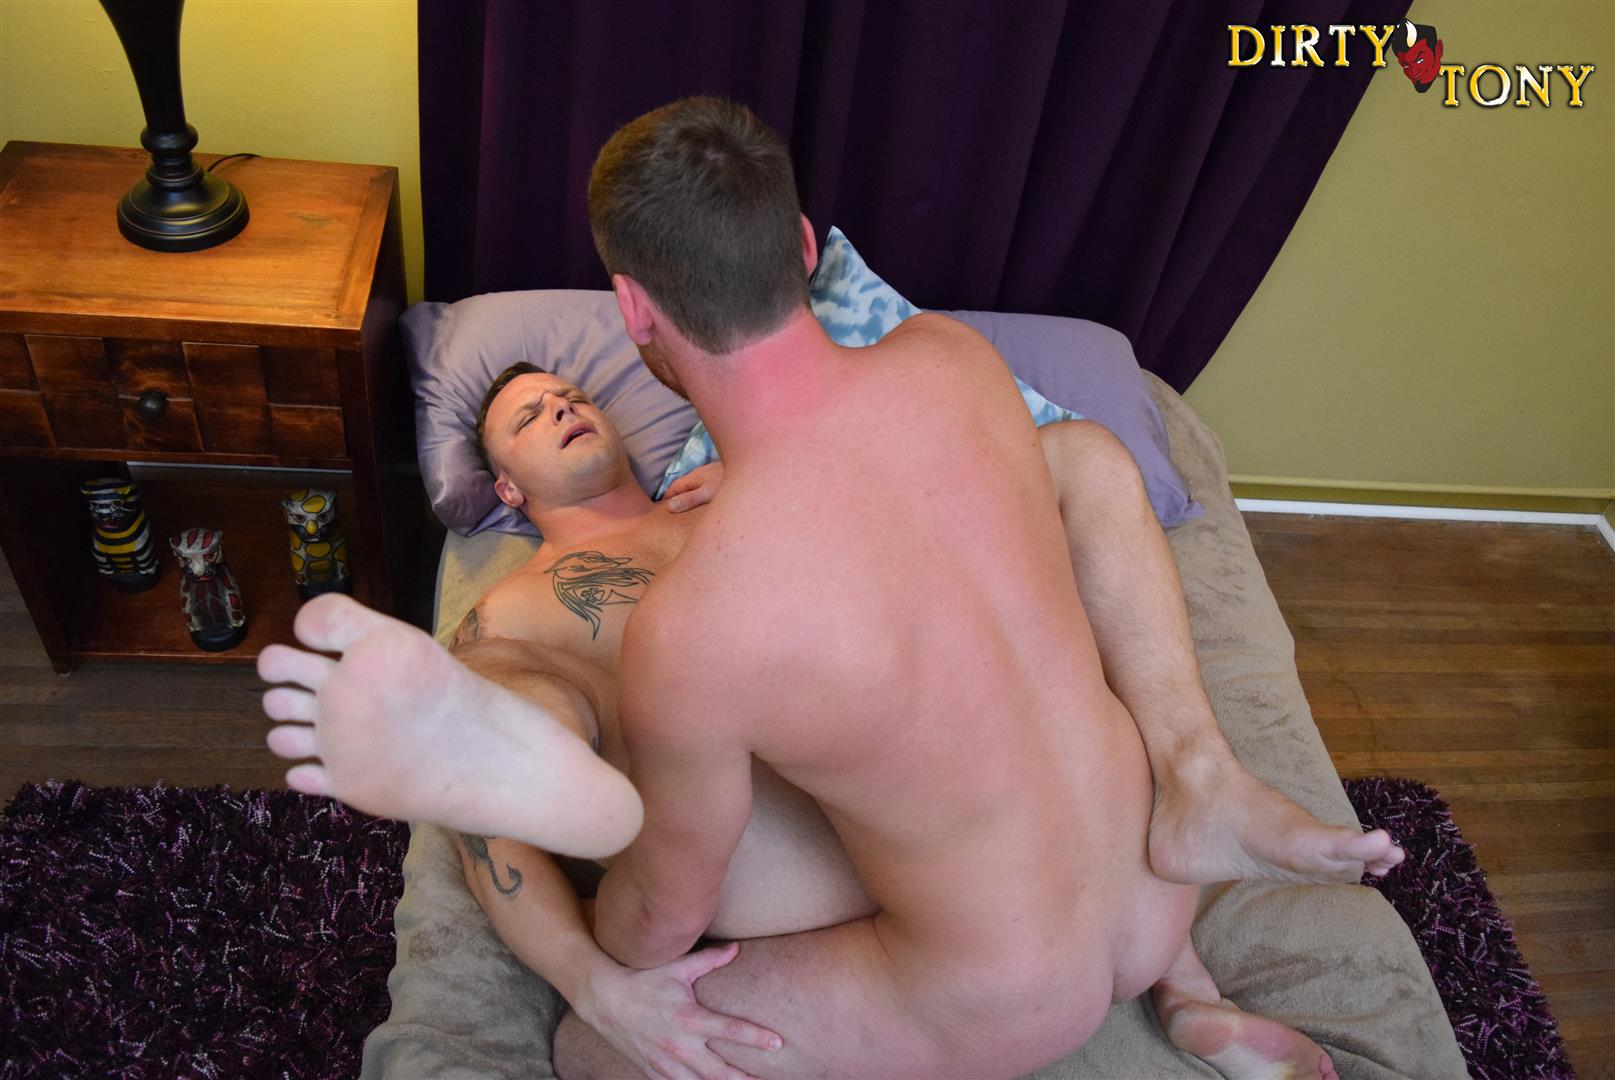 Dirty Tony Logan Blake and Connor Maguire Marine Getting Fucked In the Ass Amateur Gay Porn 11 Former US Marine Takes A Big Uncut Cock Up The Ass